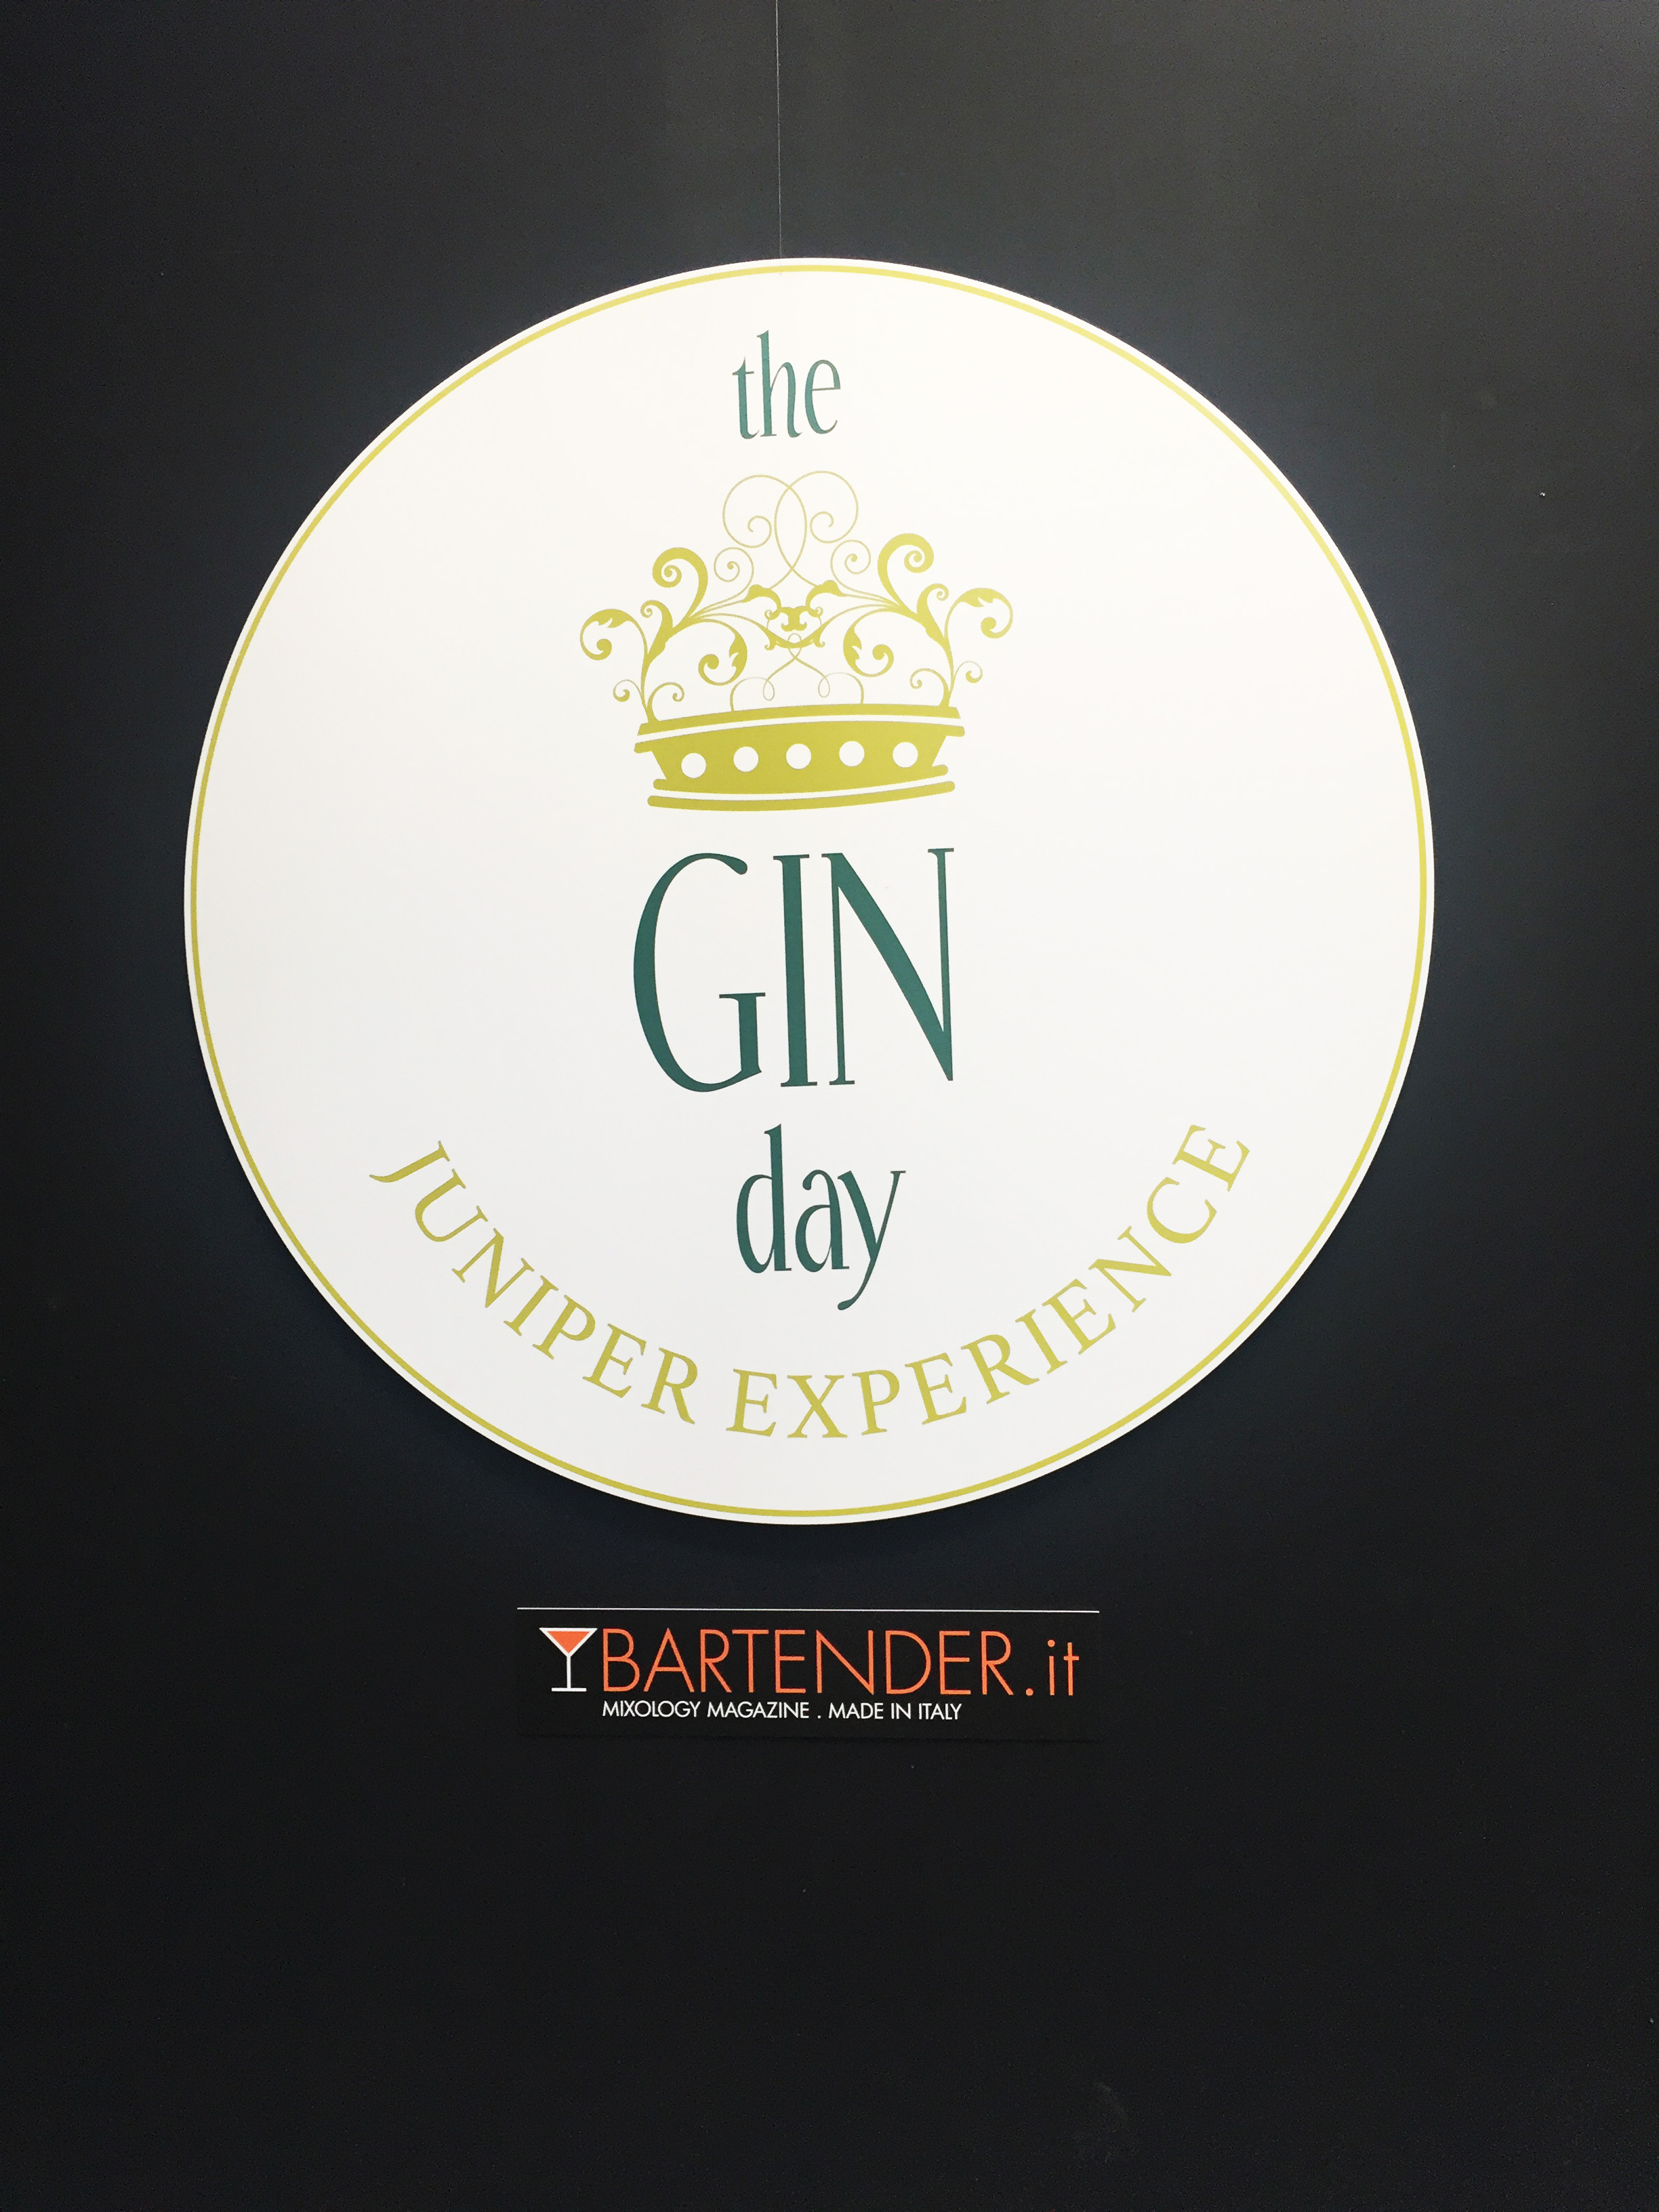 The Gin day 2018 - Juniper experience in via Watt 15 - 2